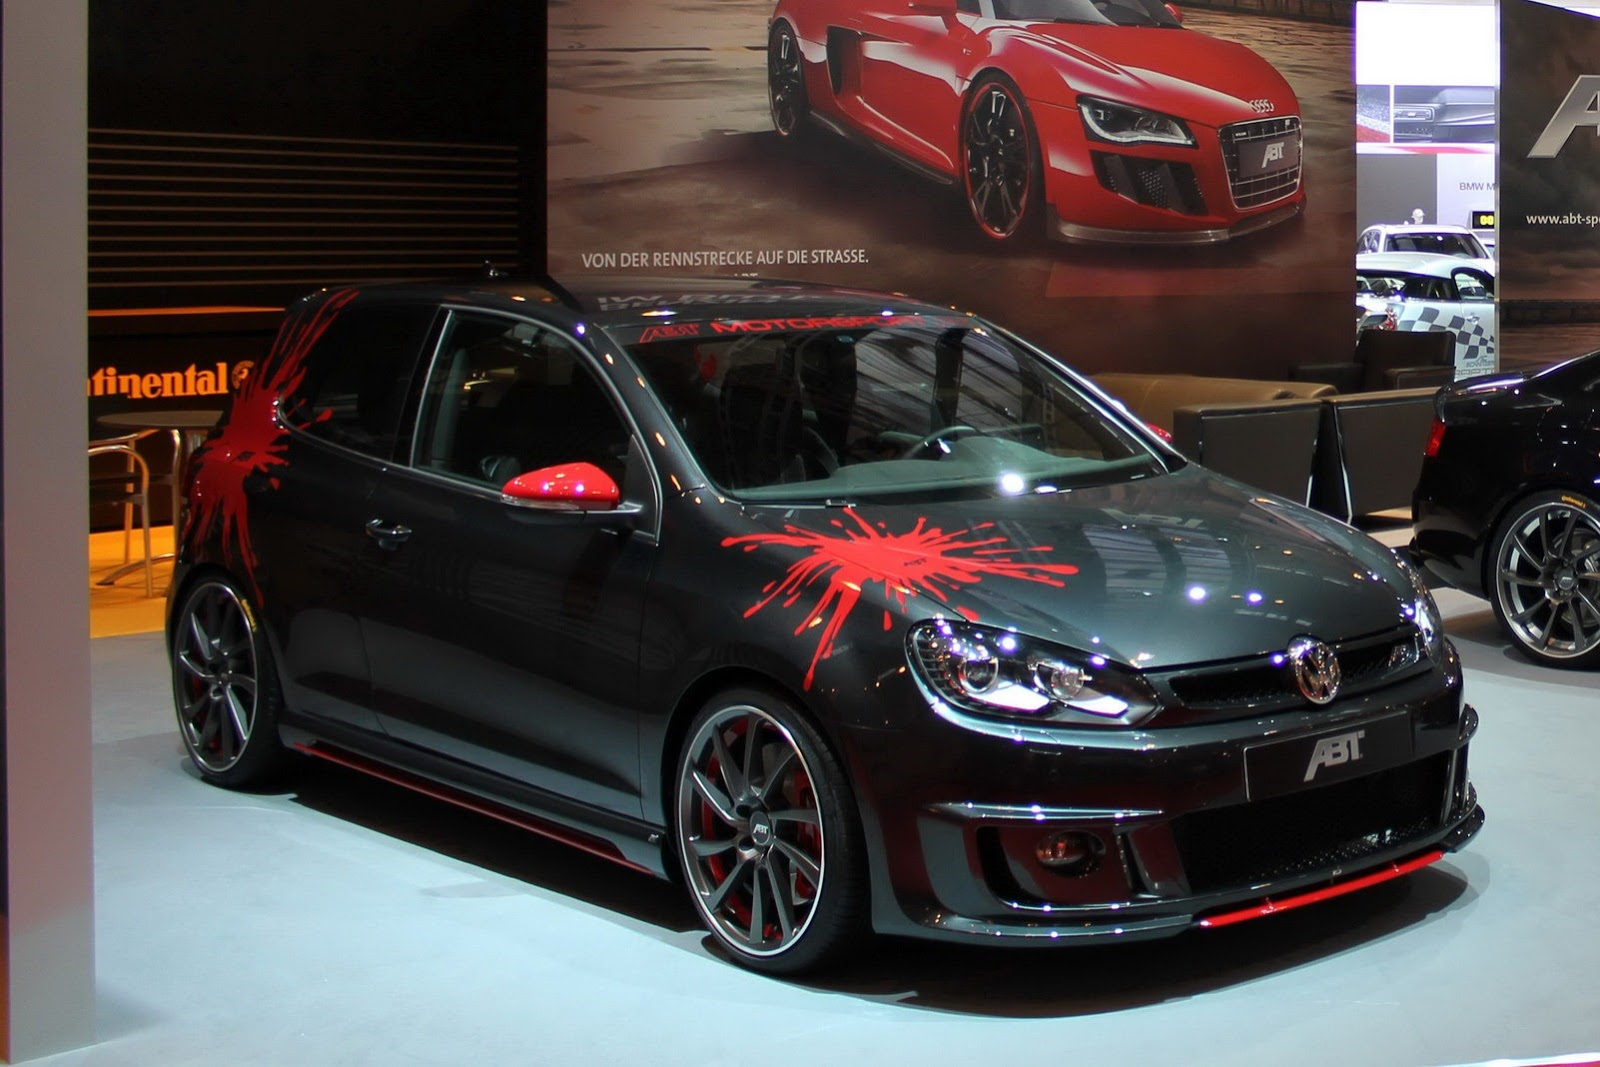 vw golf gti mk6 last edition autooonline magazine. Black Bedroom Furniture Sets. Home Design Ideas